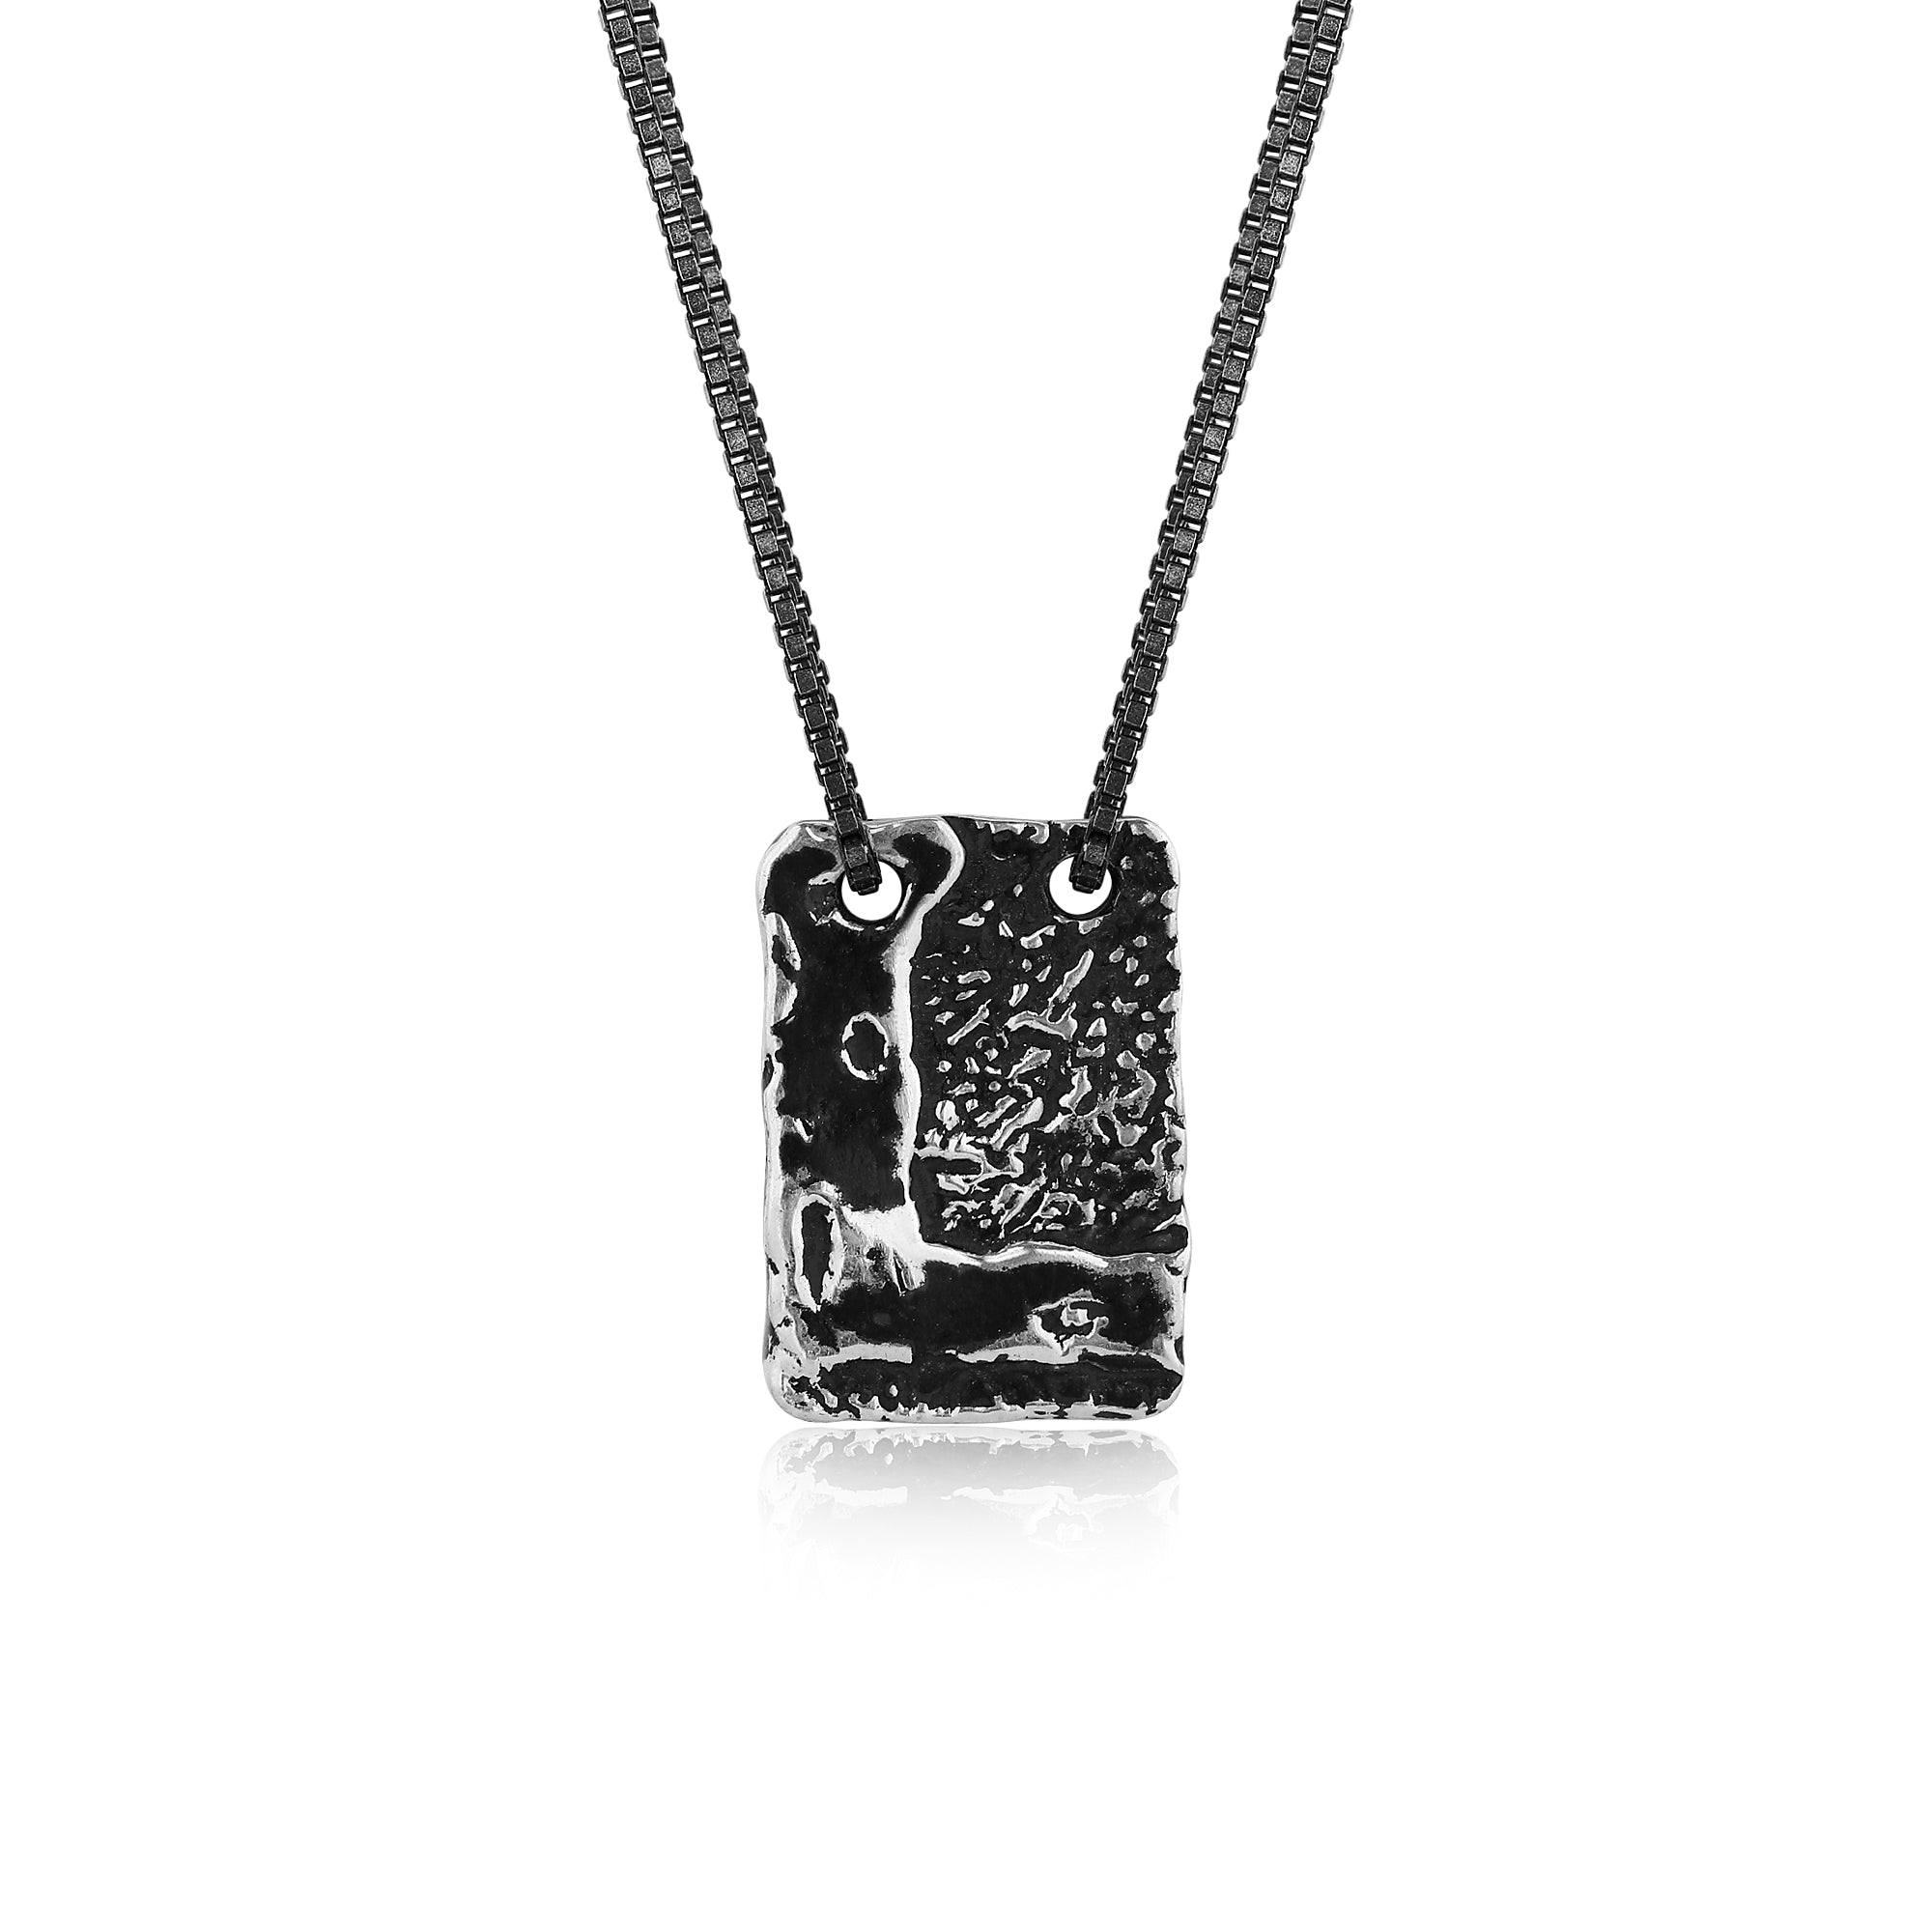 Silver Necklace with Textured Rectangle Pendant